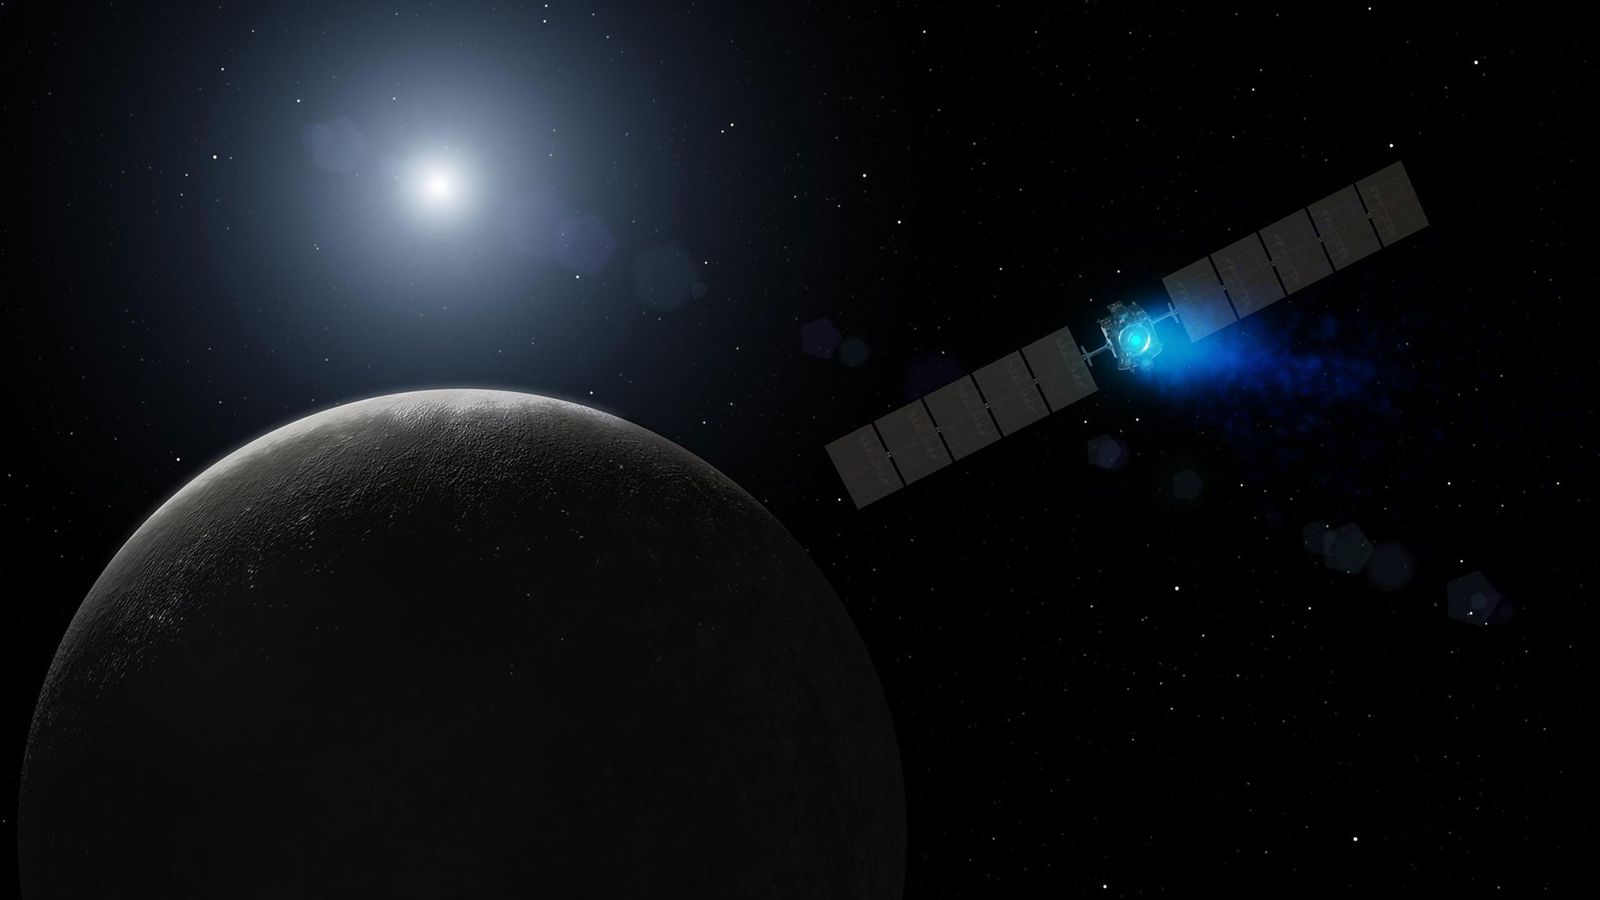 NASA's Dawn spacecraft arrives at the dwarf planet Ceres in an illustration.